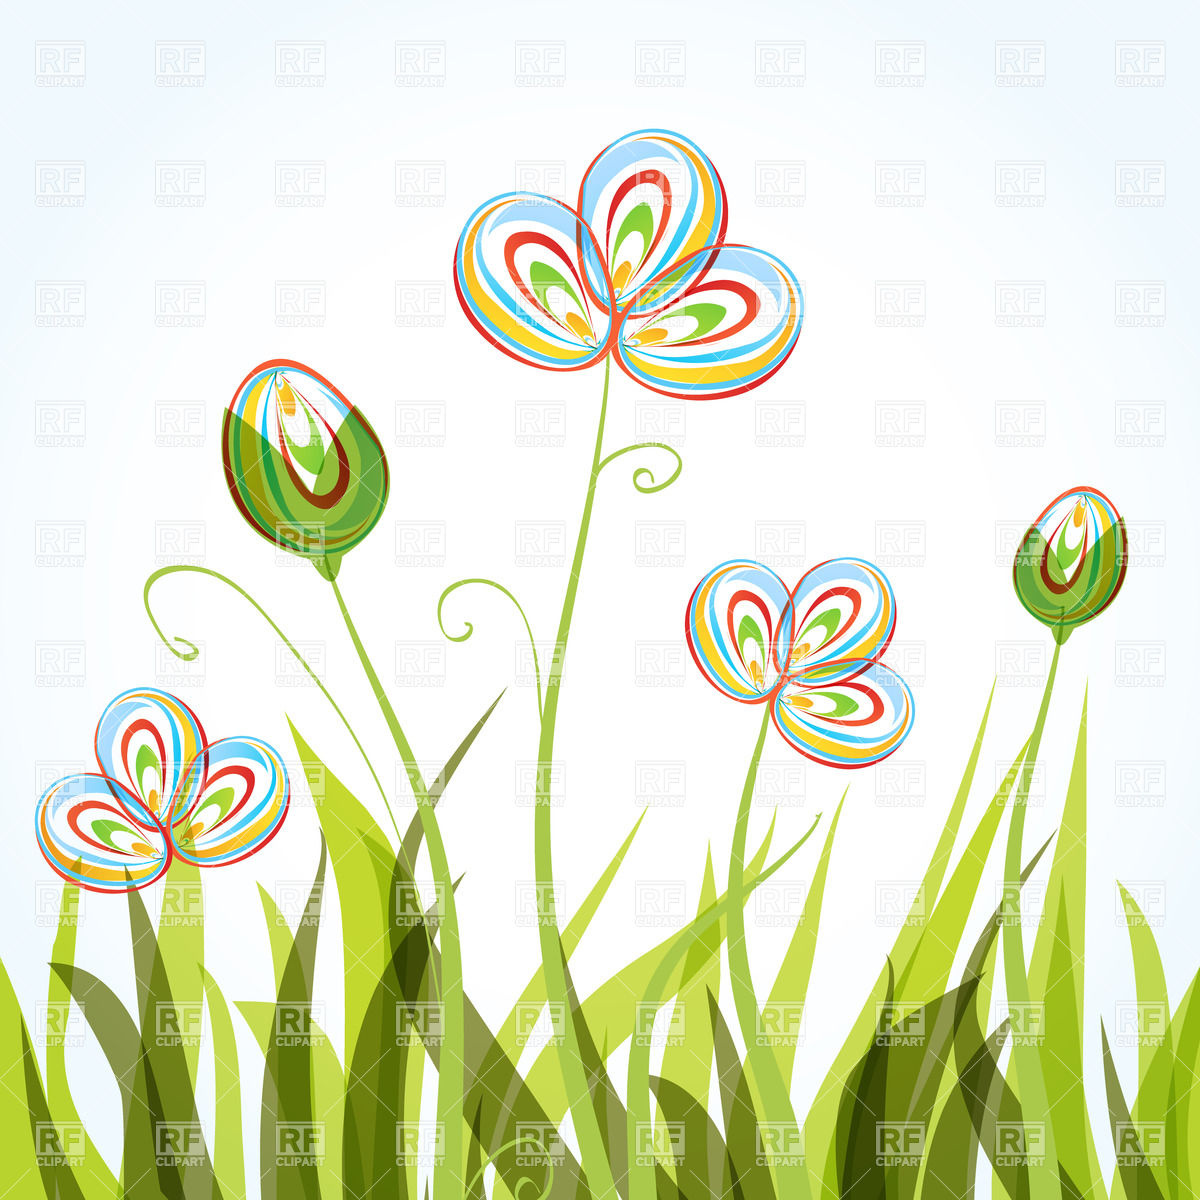 Flowers and grass clipart.